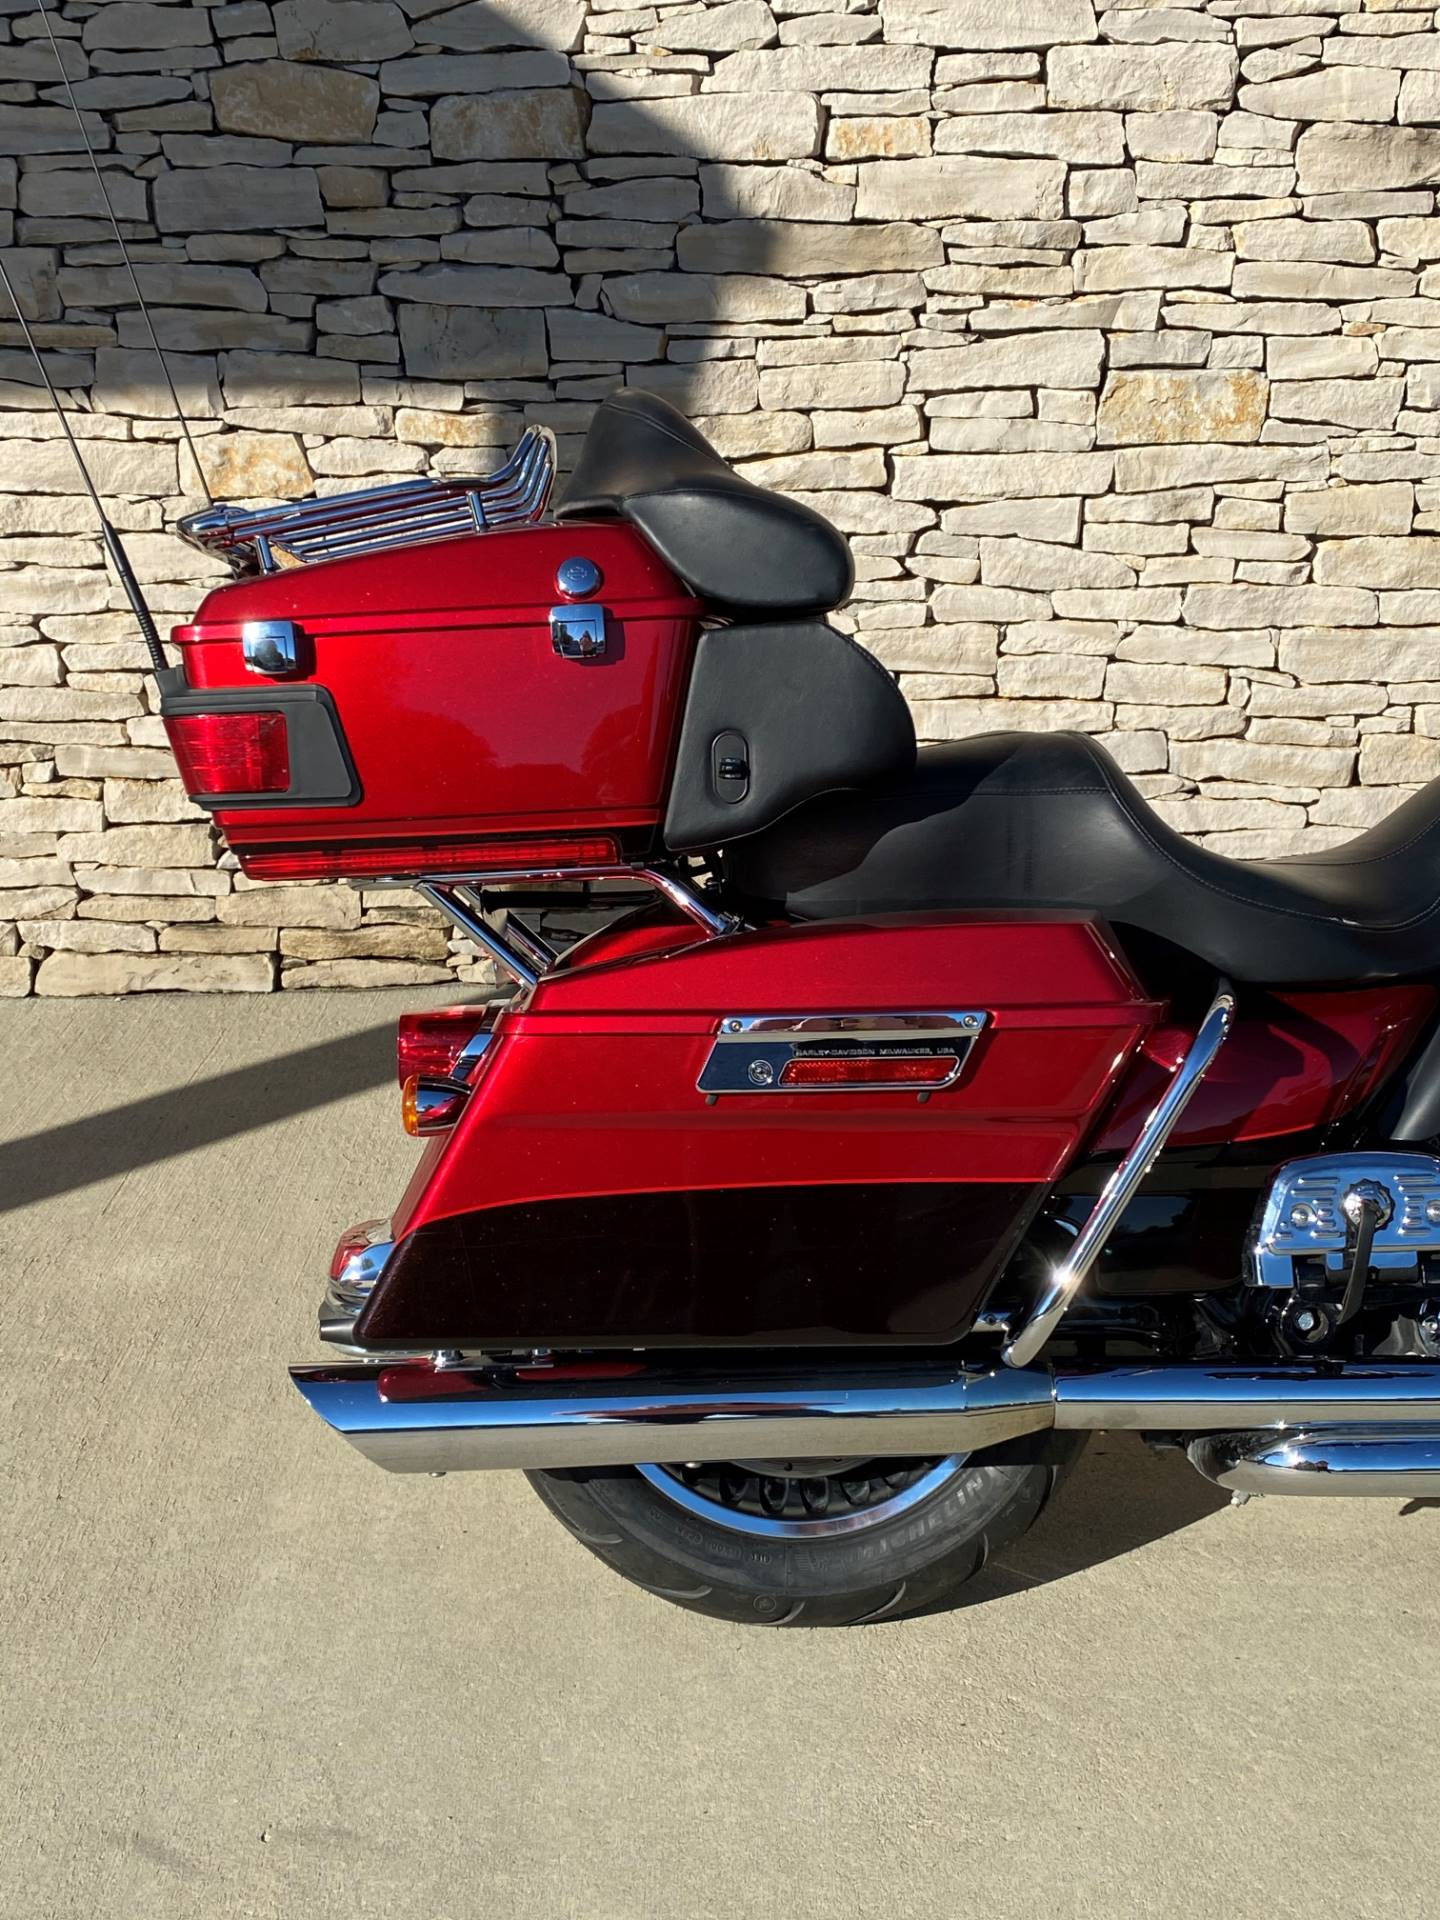 2012 Harley-Davidson Electra Glide® Ultra Limited in Bloomington, Indiana - Photo 3